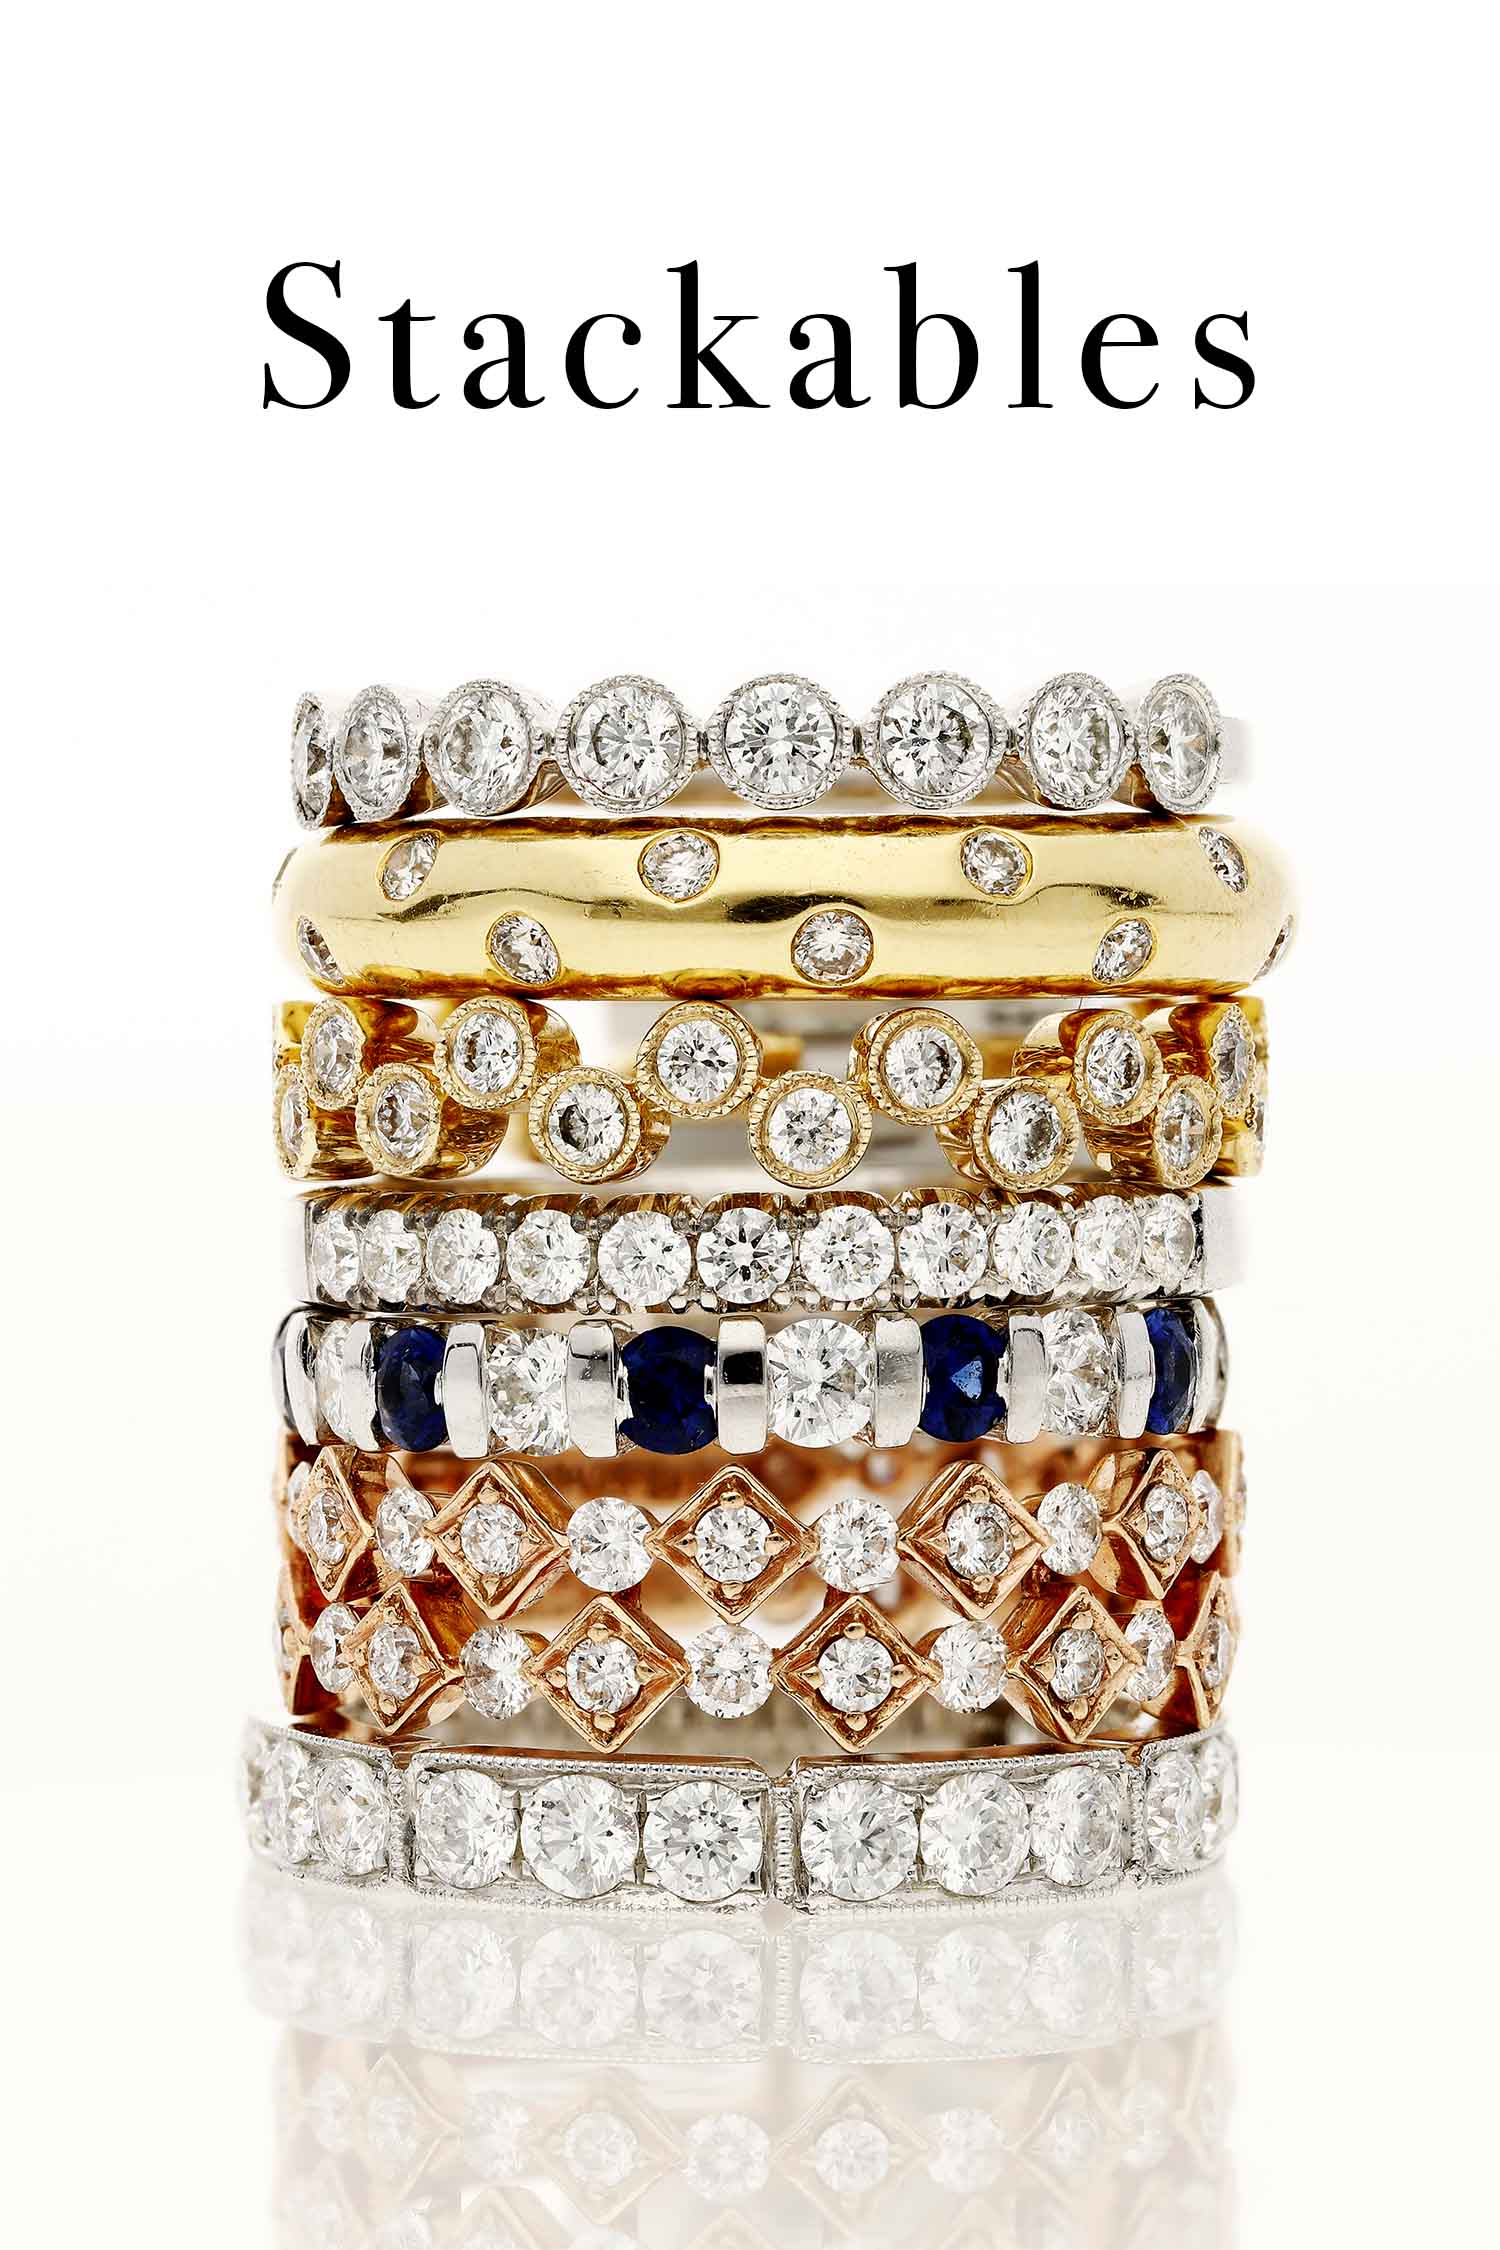 stackable-1